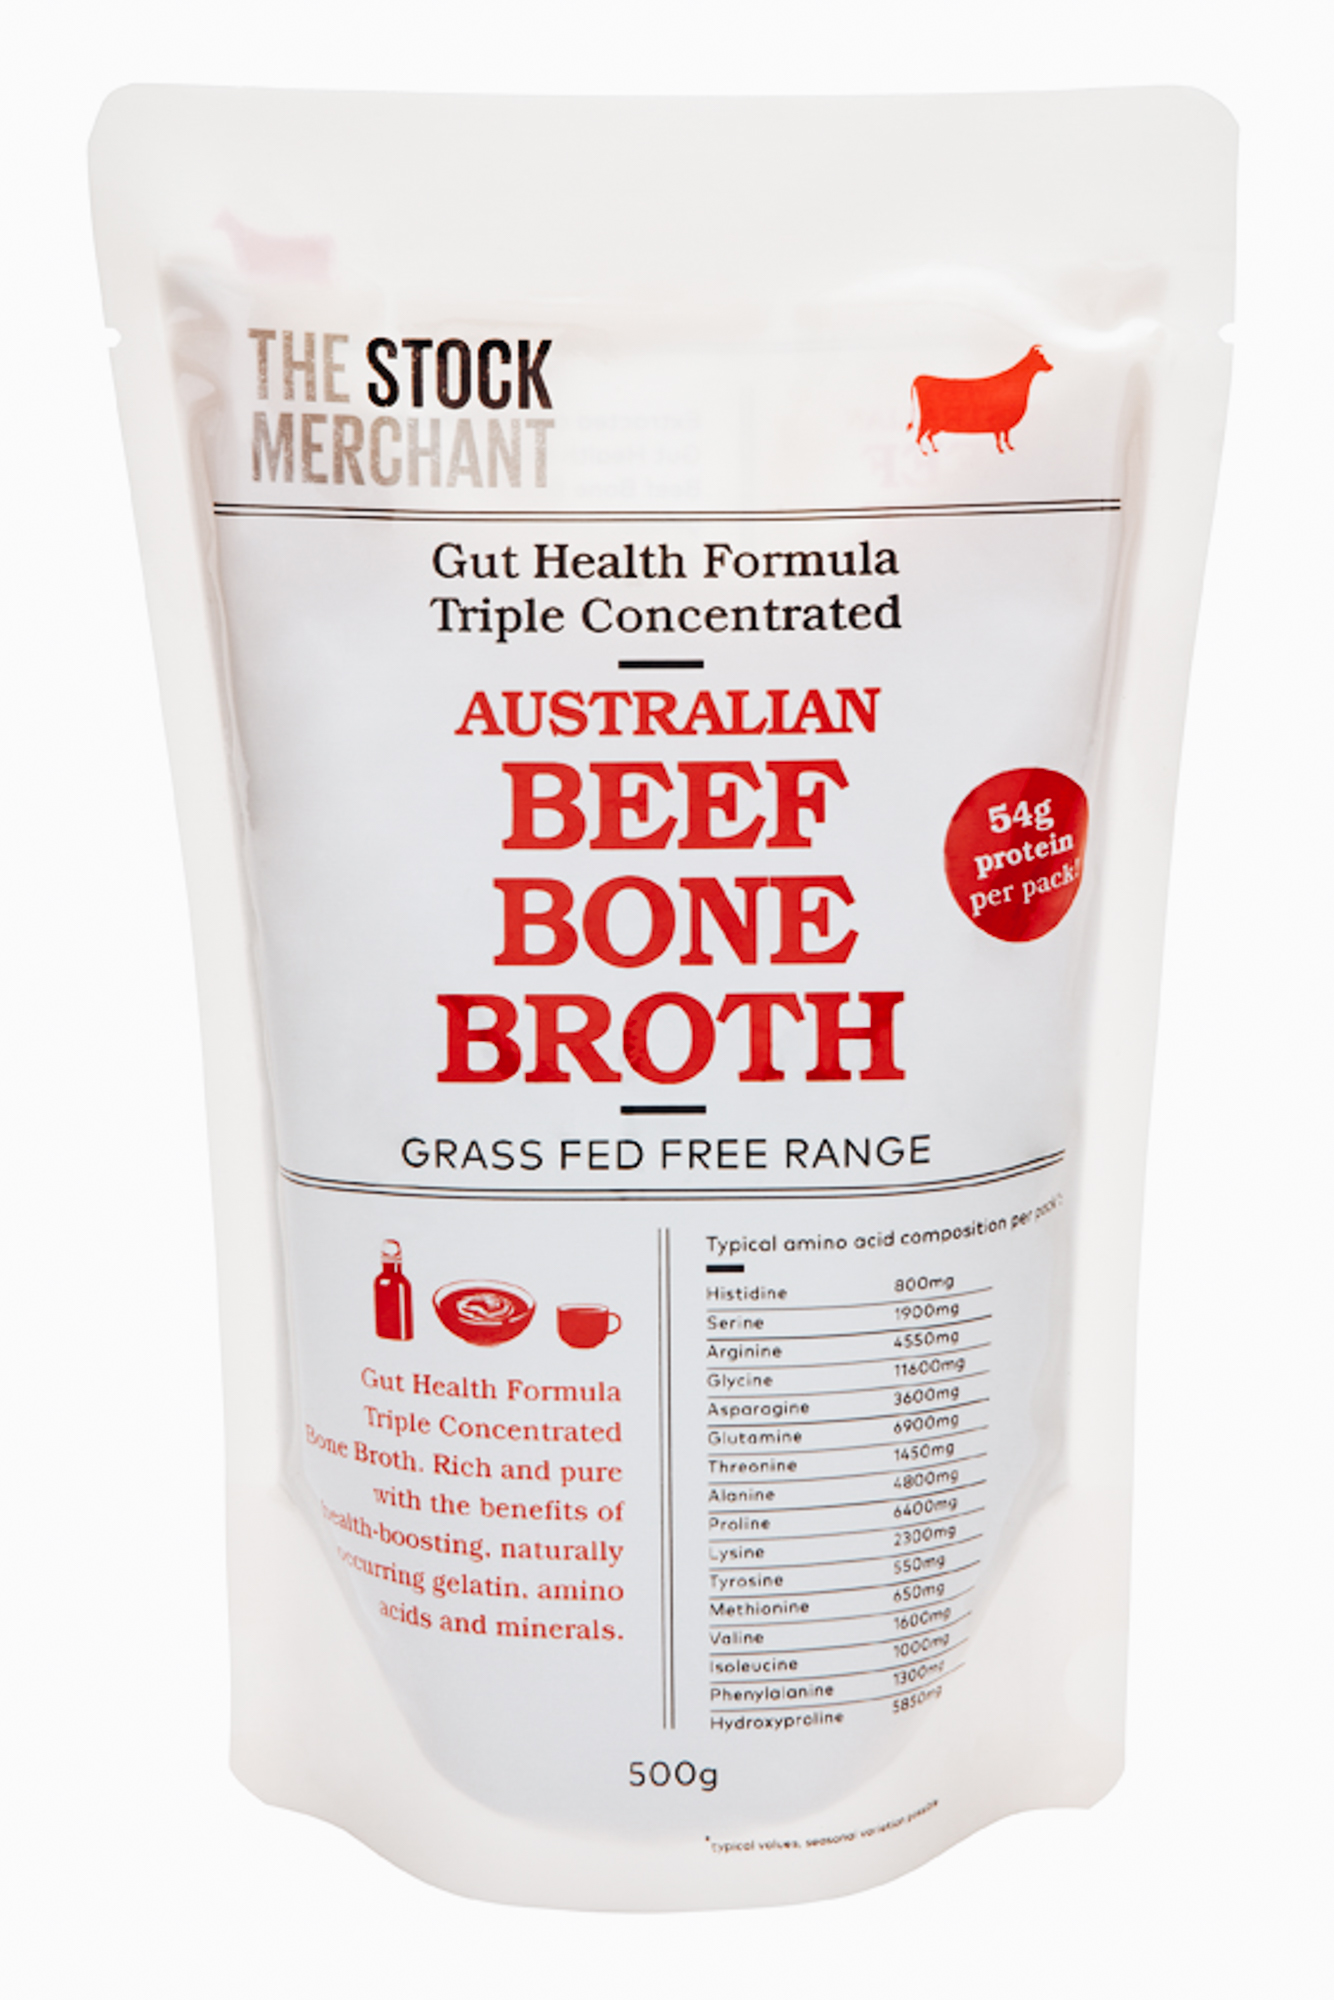 Beef Gut Health Bone Broth - Over 59 grams of protein per pack.